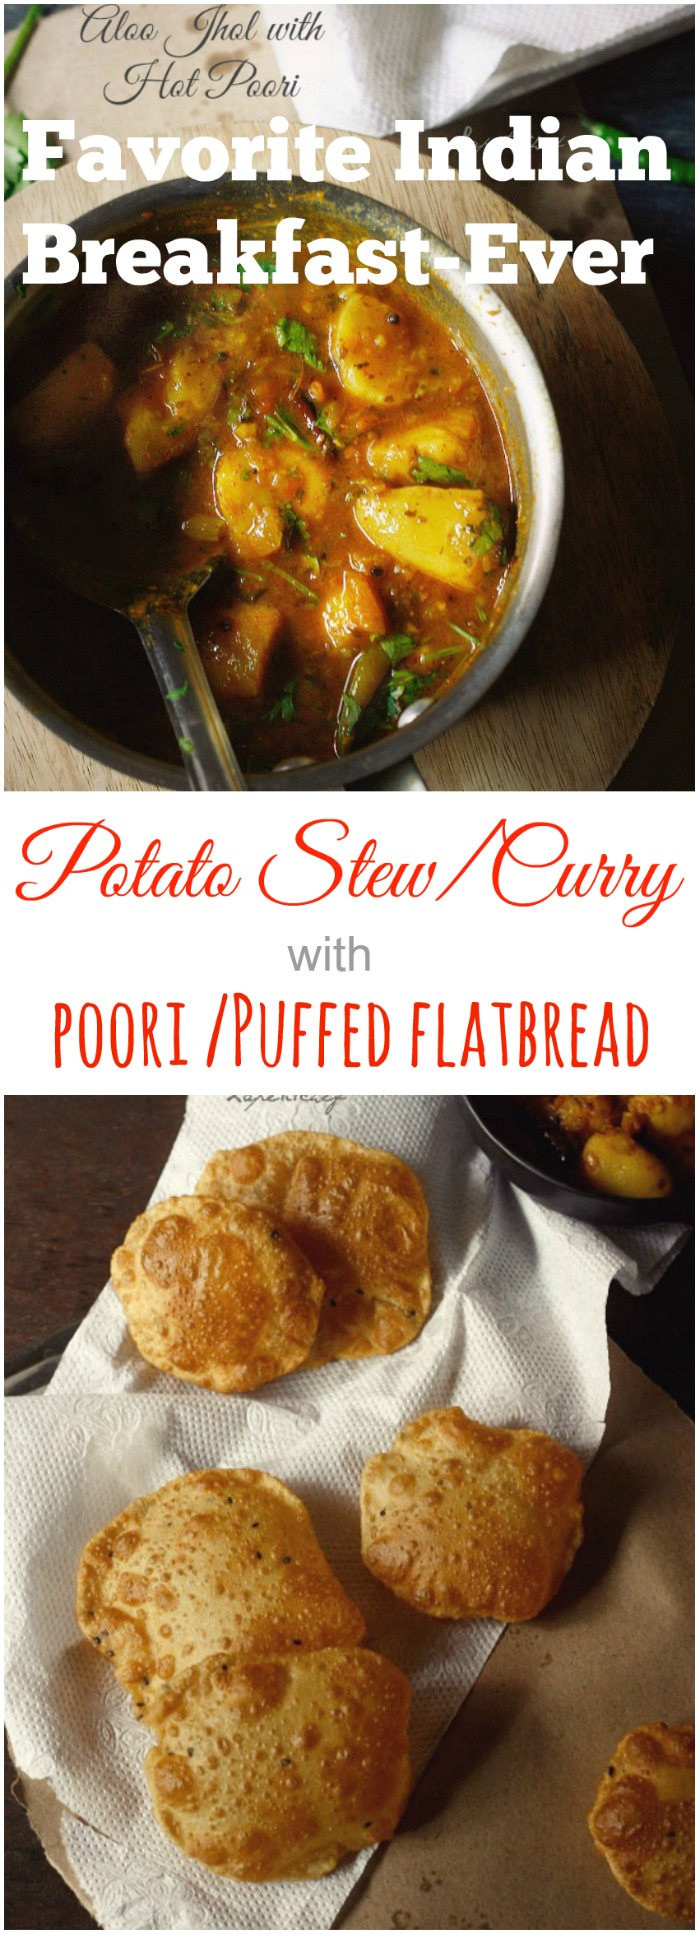 A MUST make Indian dish that will satiate all your senses!! Spicy potato curry with puffed flatbreads called poori..Nostalgia at its BEST!